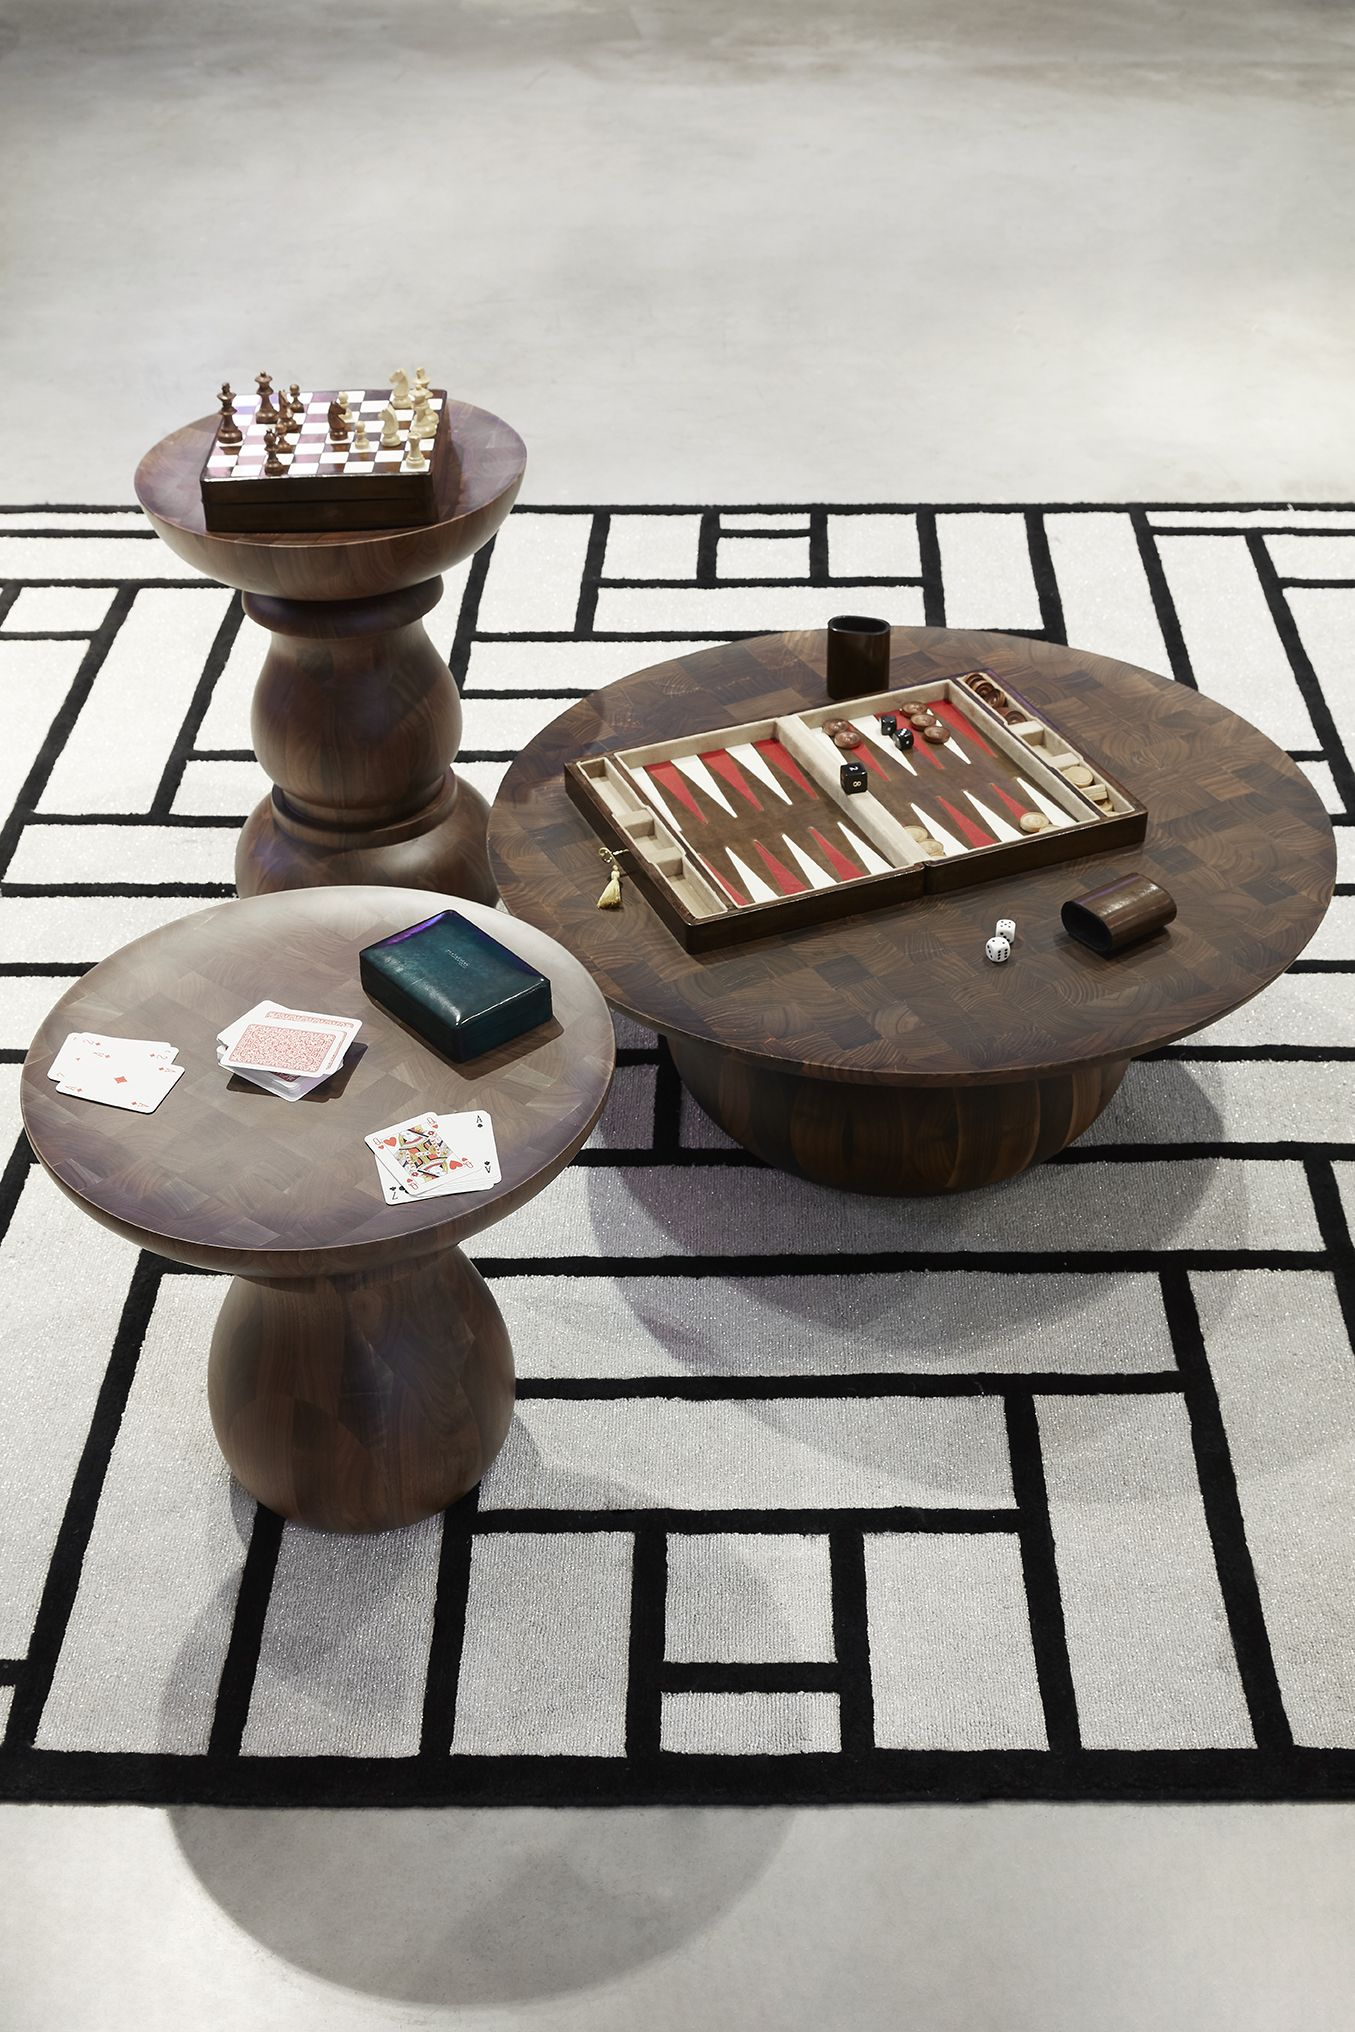 Roche Bobois Chess End Table Designed By Marcel Wanders Marcel Wanders Top Interior Designers Interior Designers